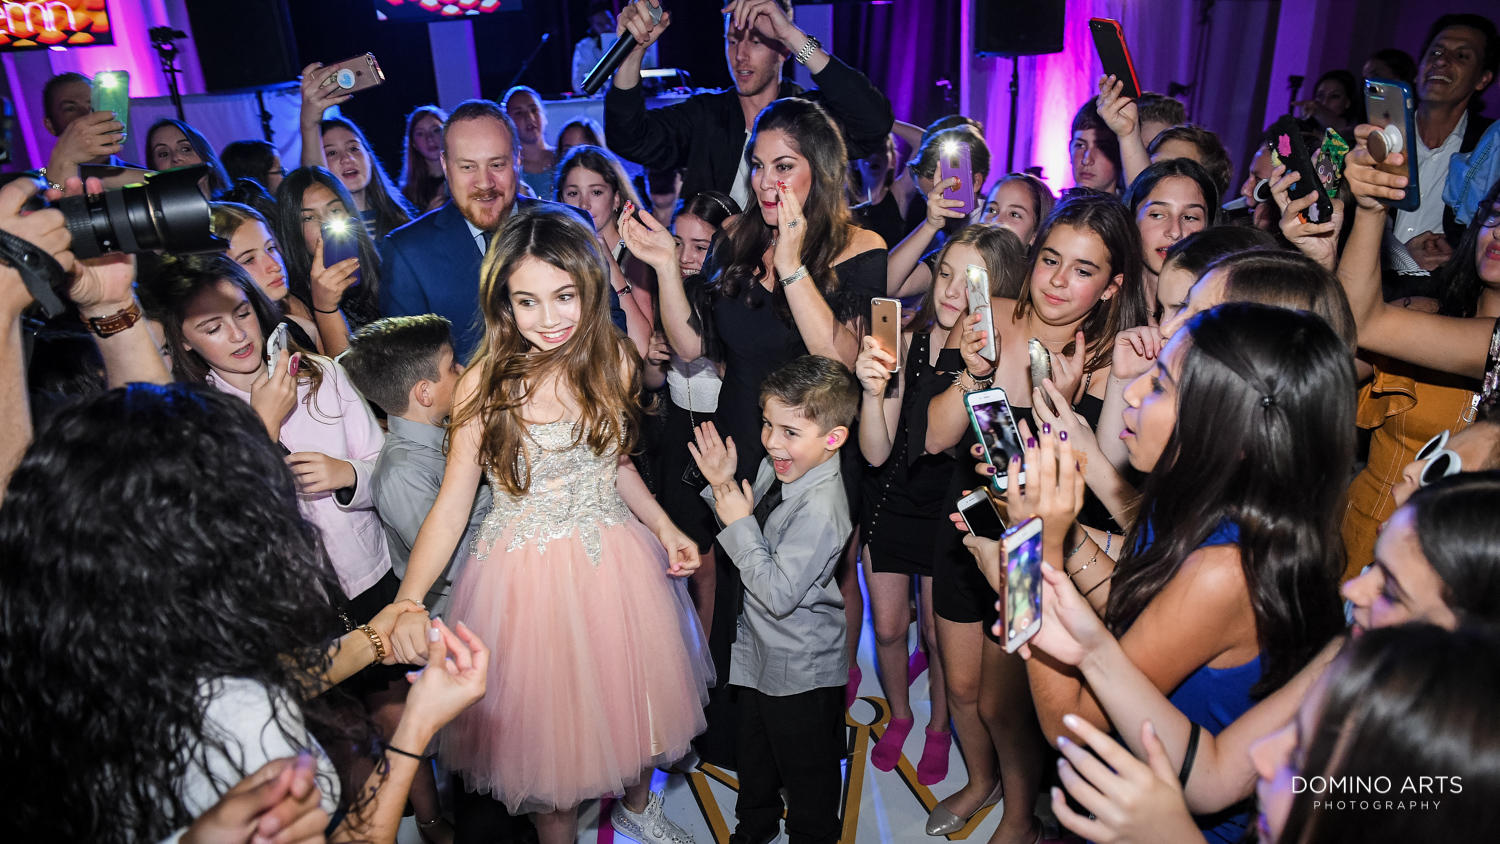 Best entertainment Fun Mitzvah party pictures at Gallery of Amazing Things